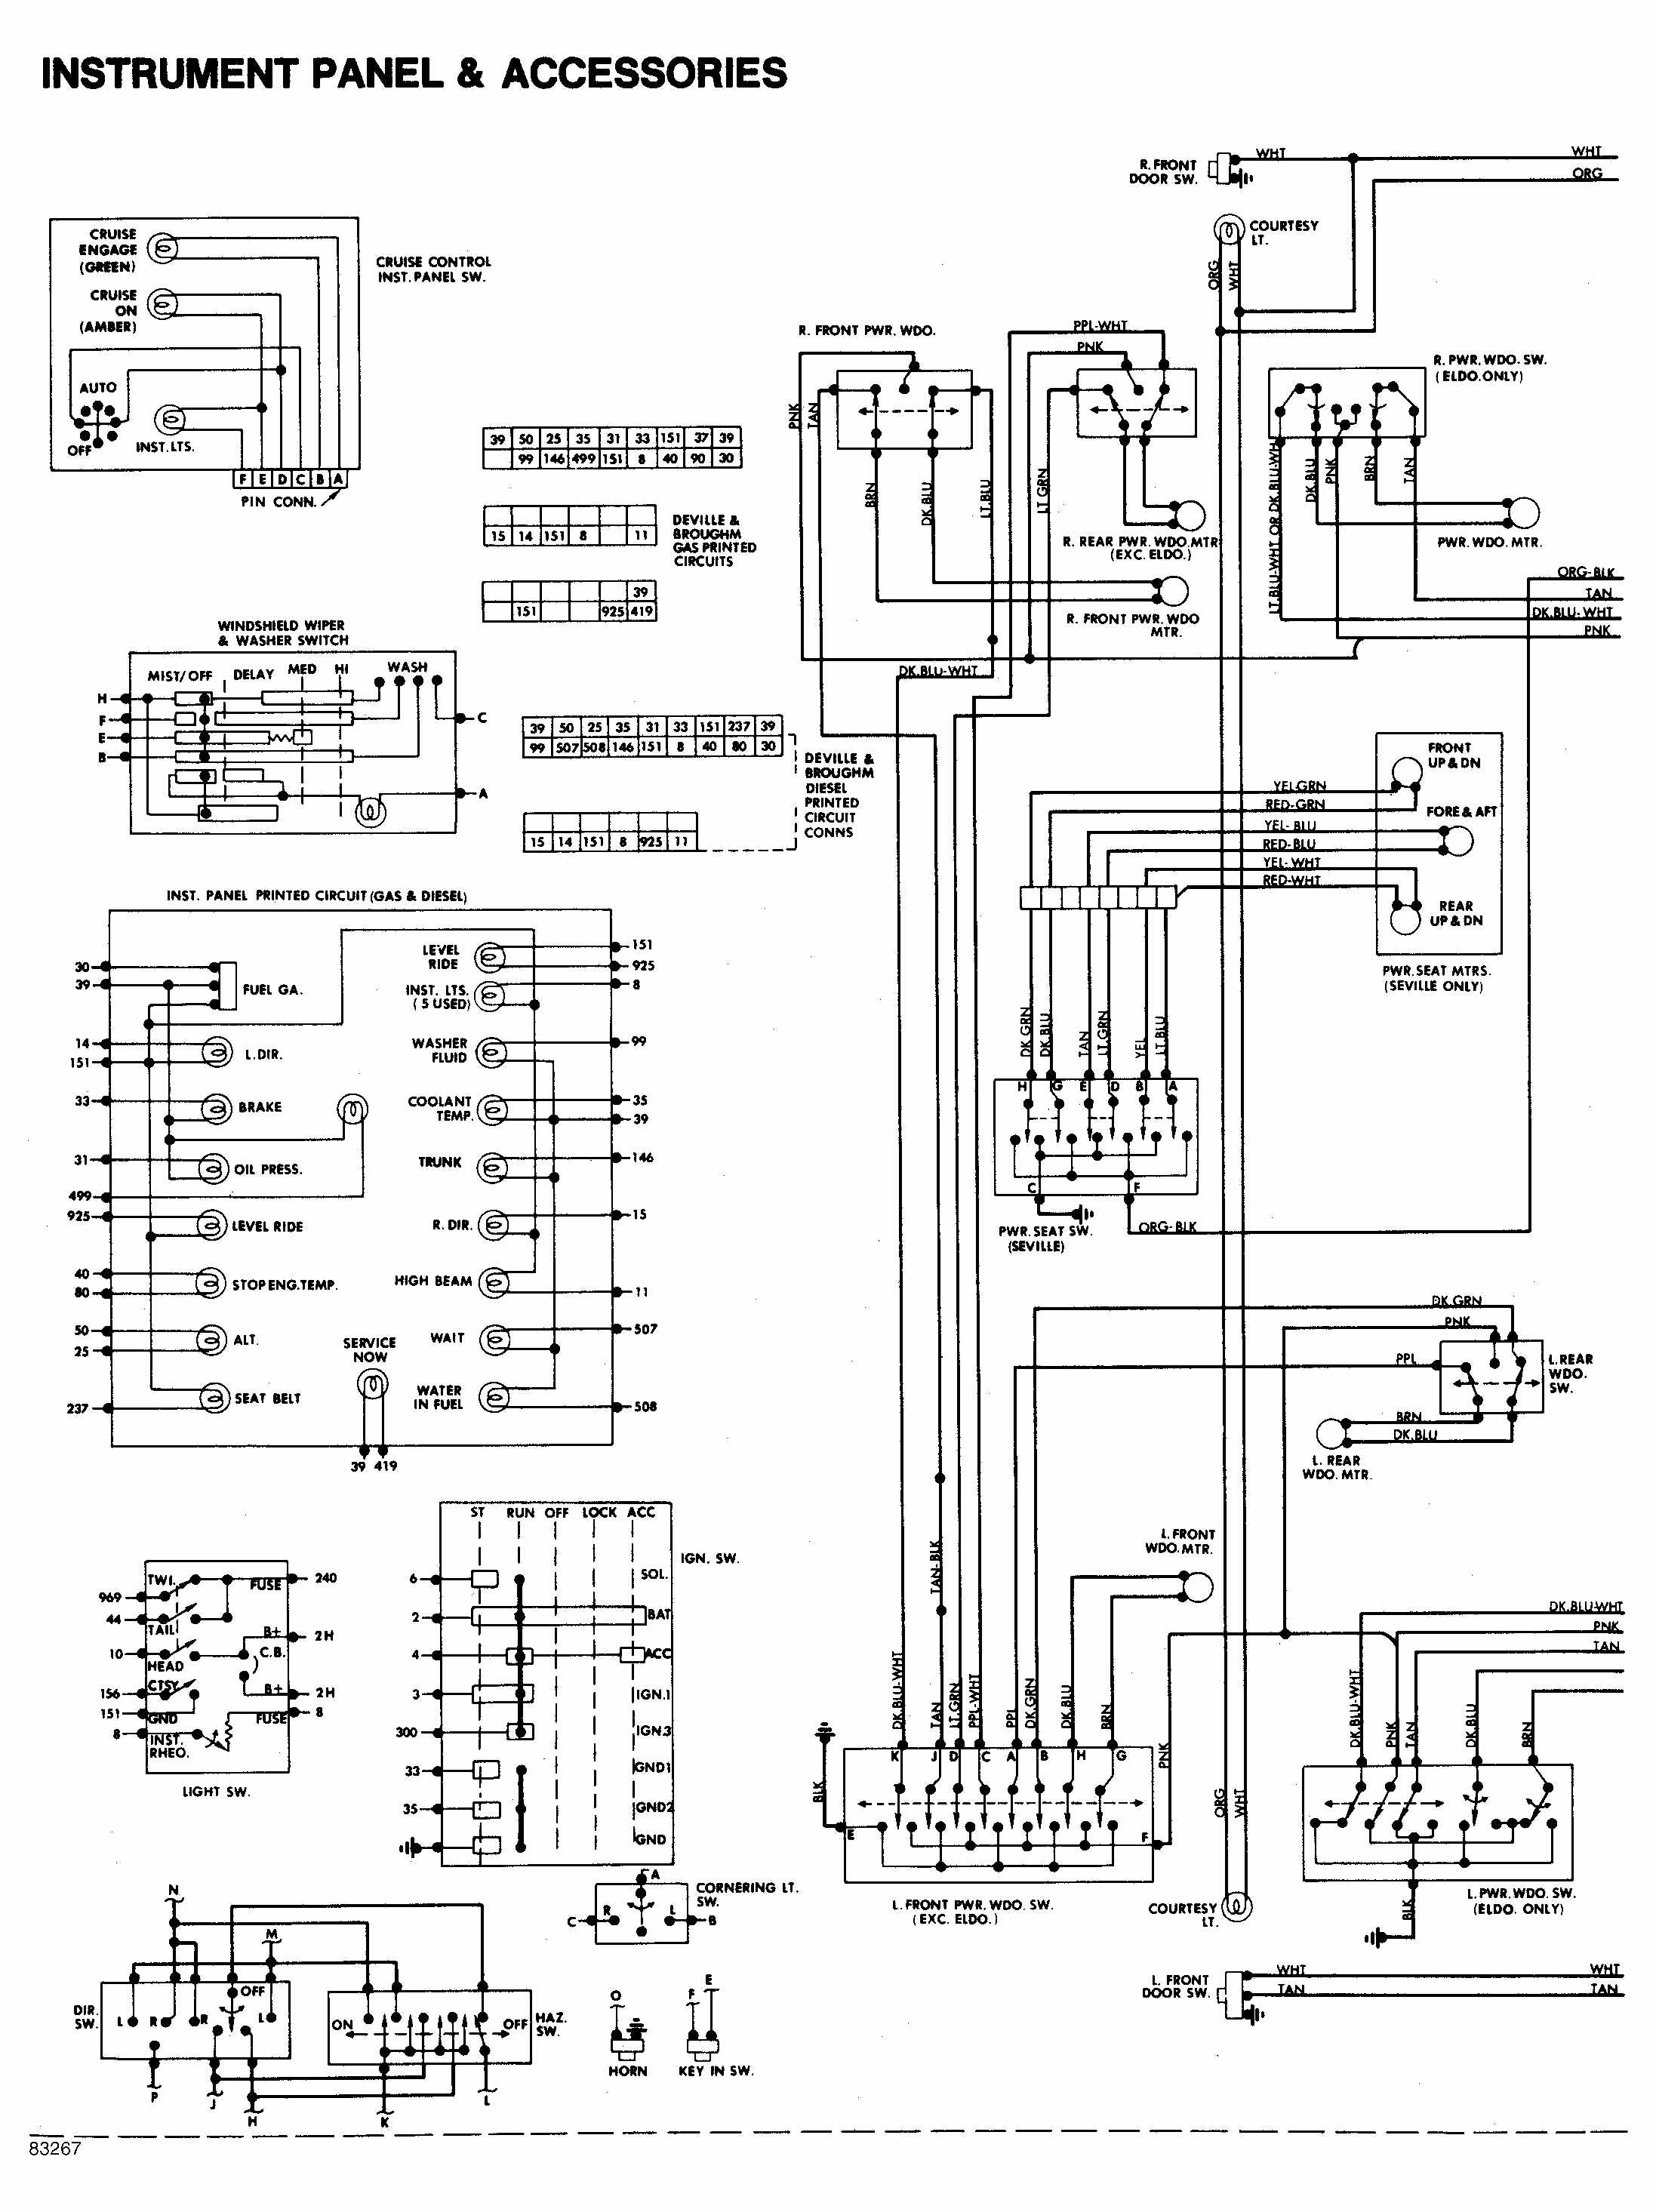 2011 Jeep Grand Cherokee Fuse Box Diagram. Jeep. Auto